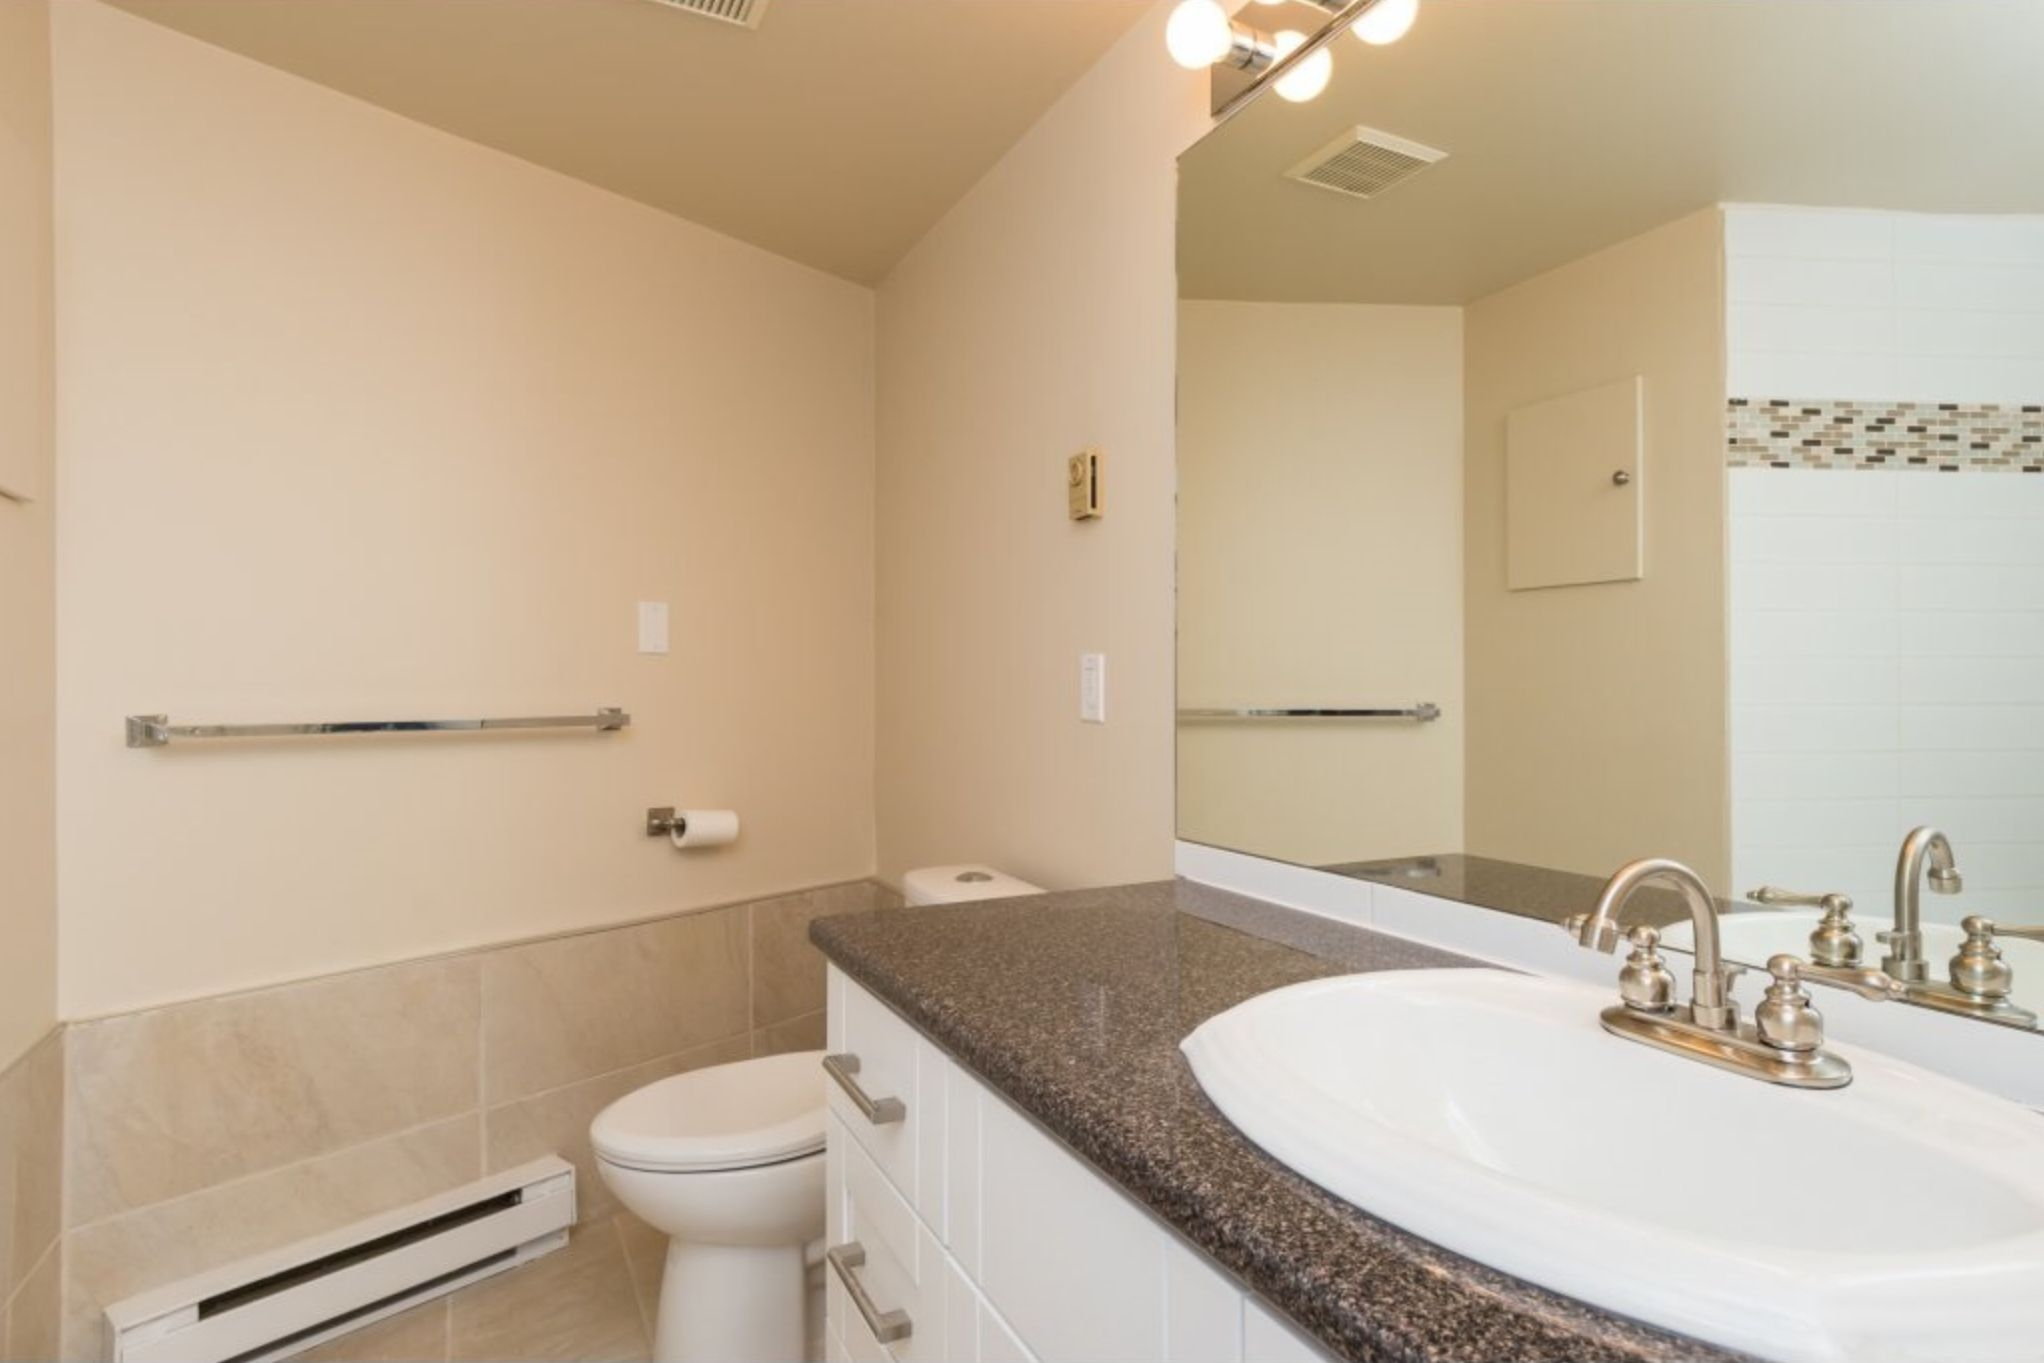 Photo 12: Photos: 410, 15111 Russell Avenue: White Rock Condo for sale (South Surrey White Rock)  : MLS®# R2152299